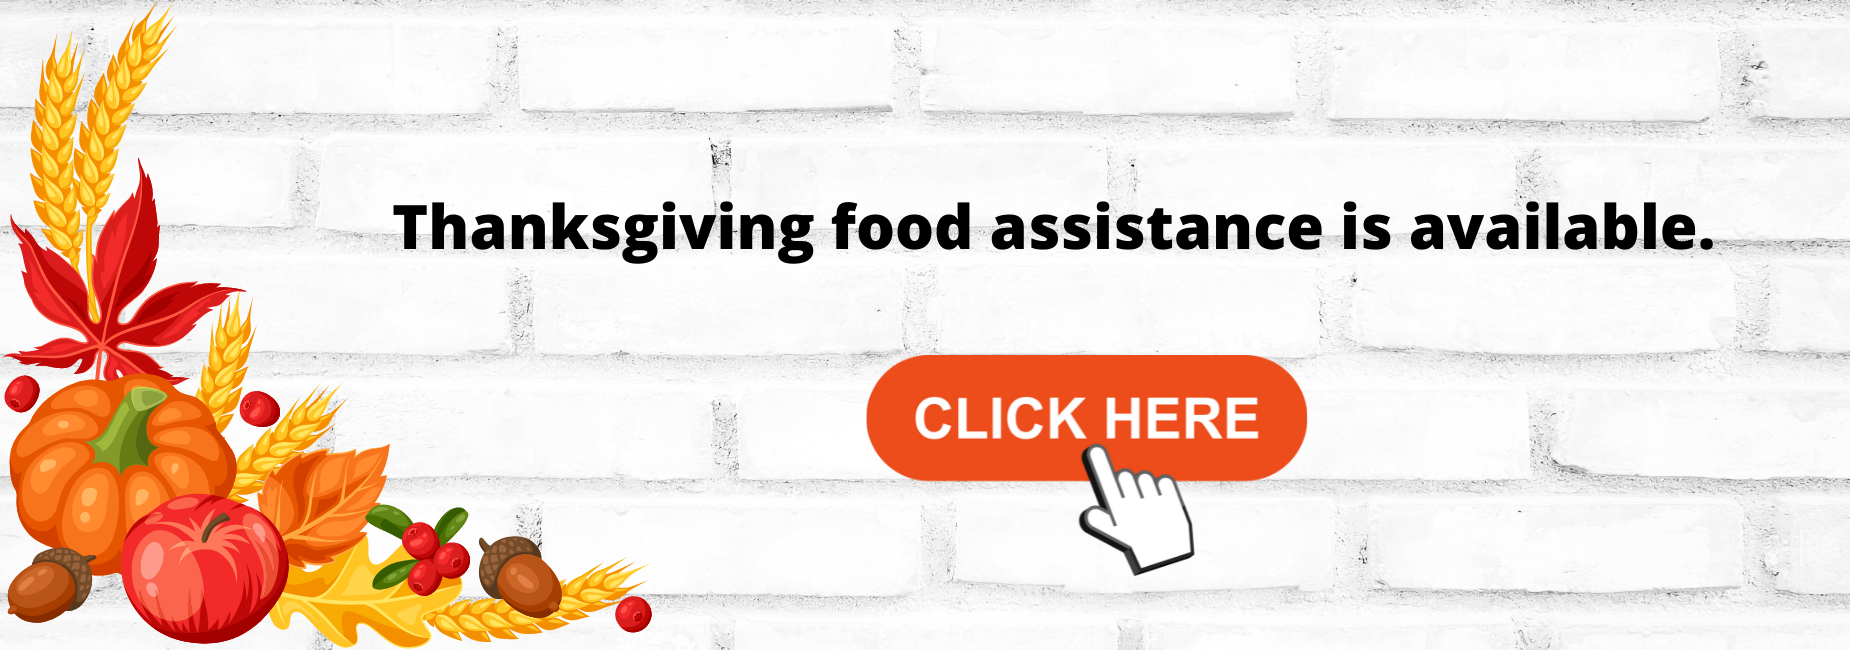 Thanksgiving Meal Assistance